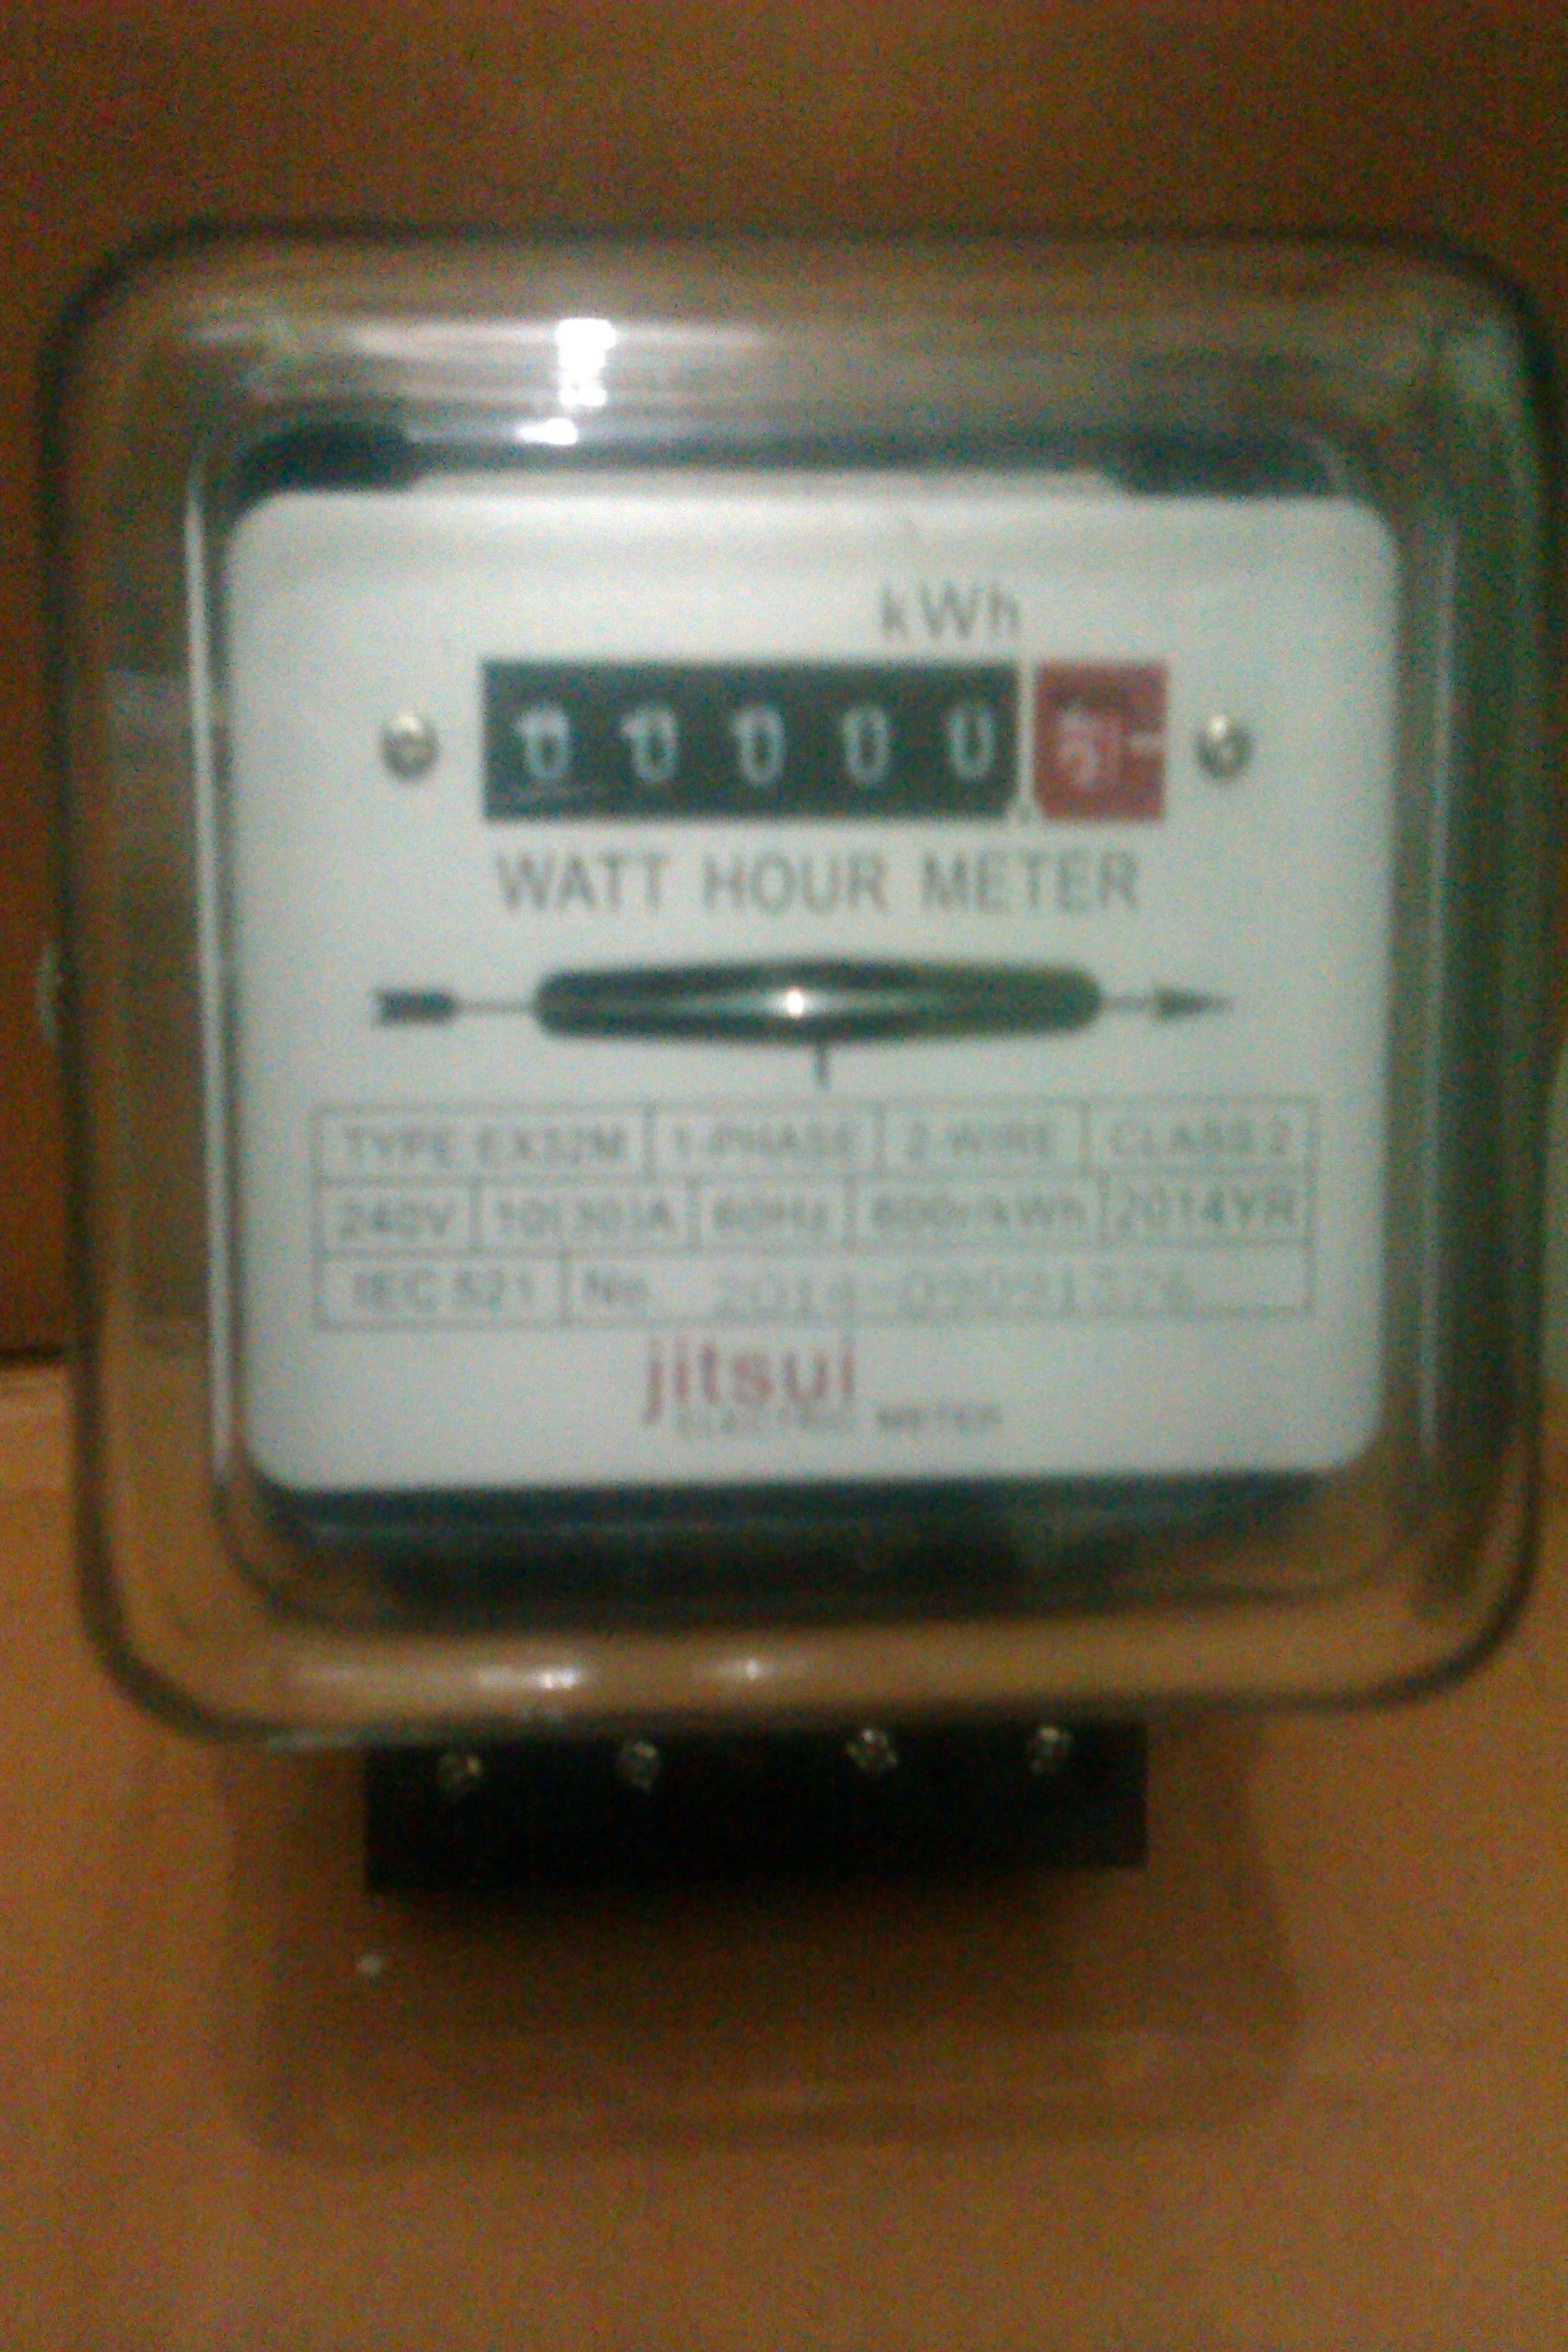 Electric Meter, Mechanical, 10/30 Ampere, 1 phase, 2 wire, 240 Volts ...